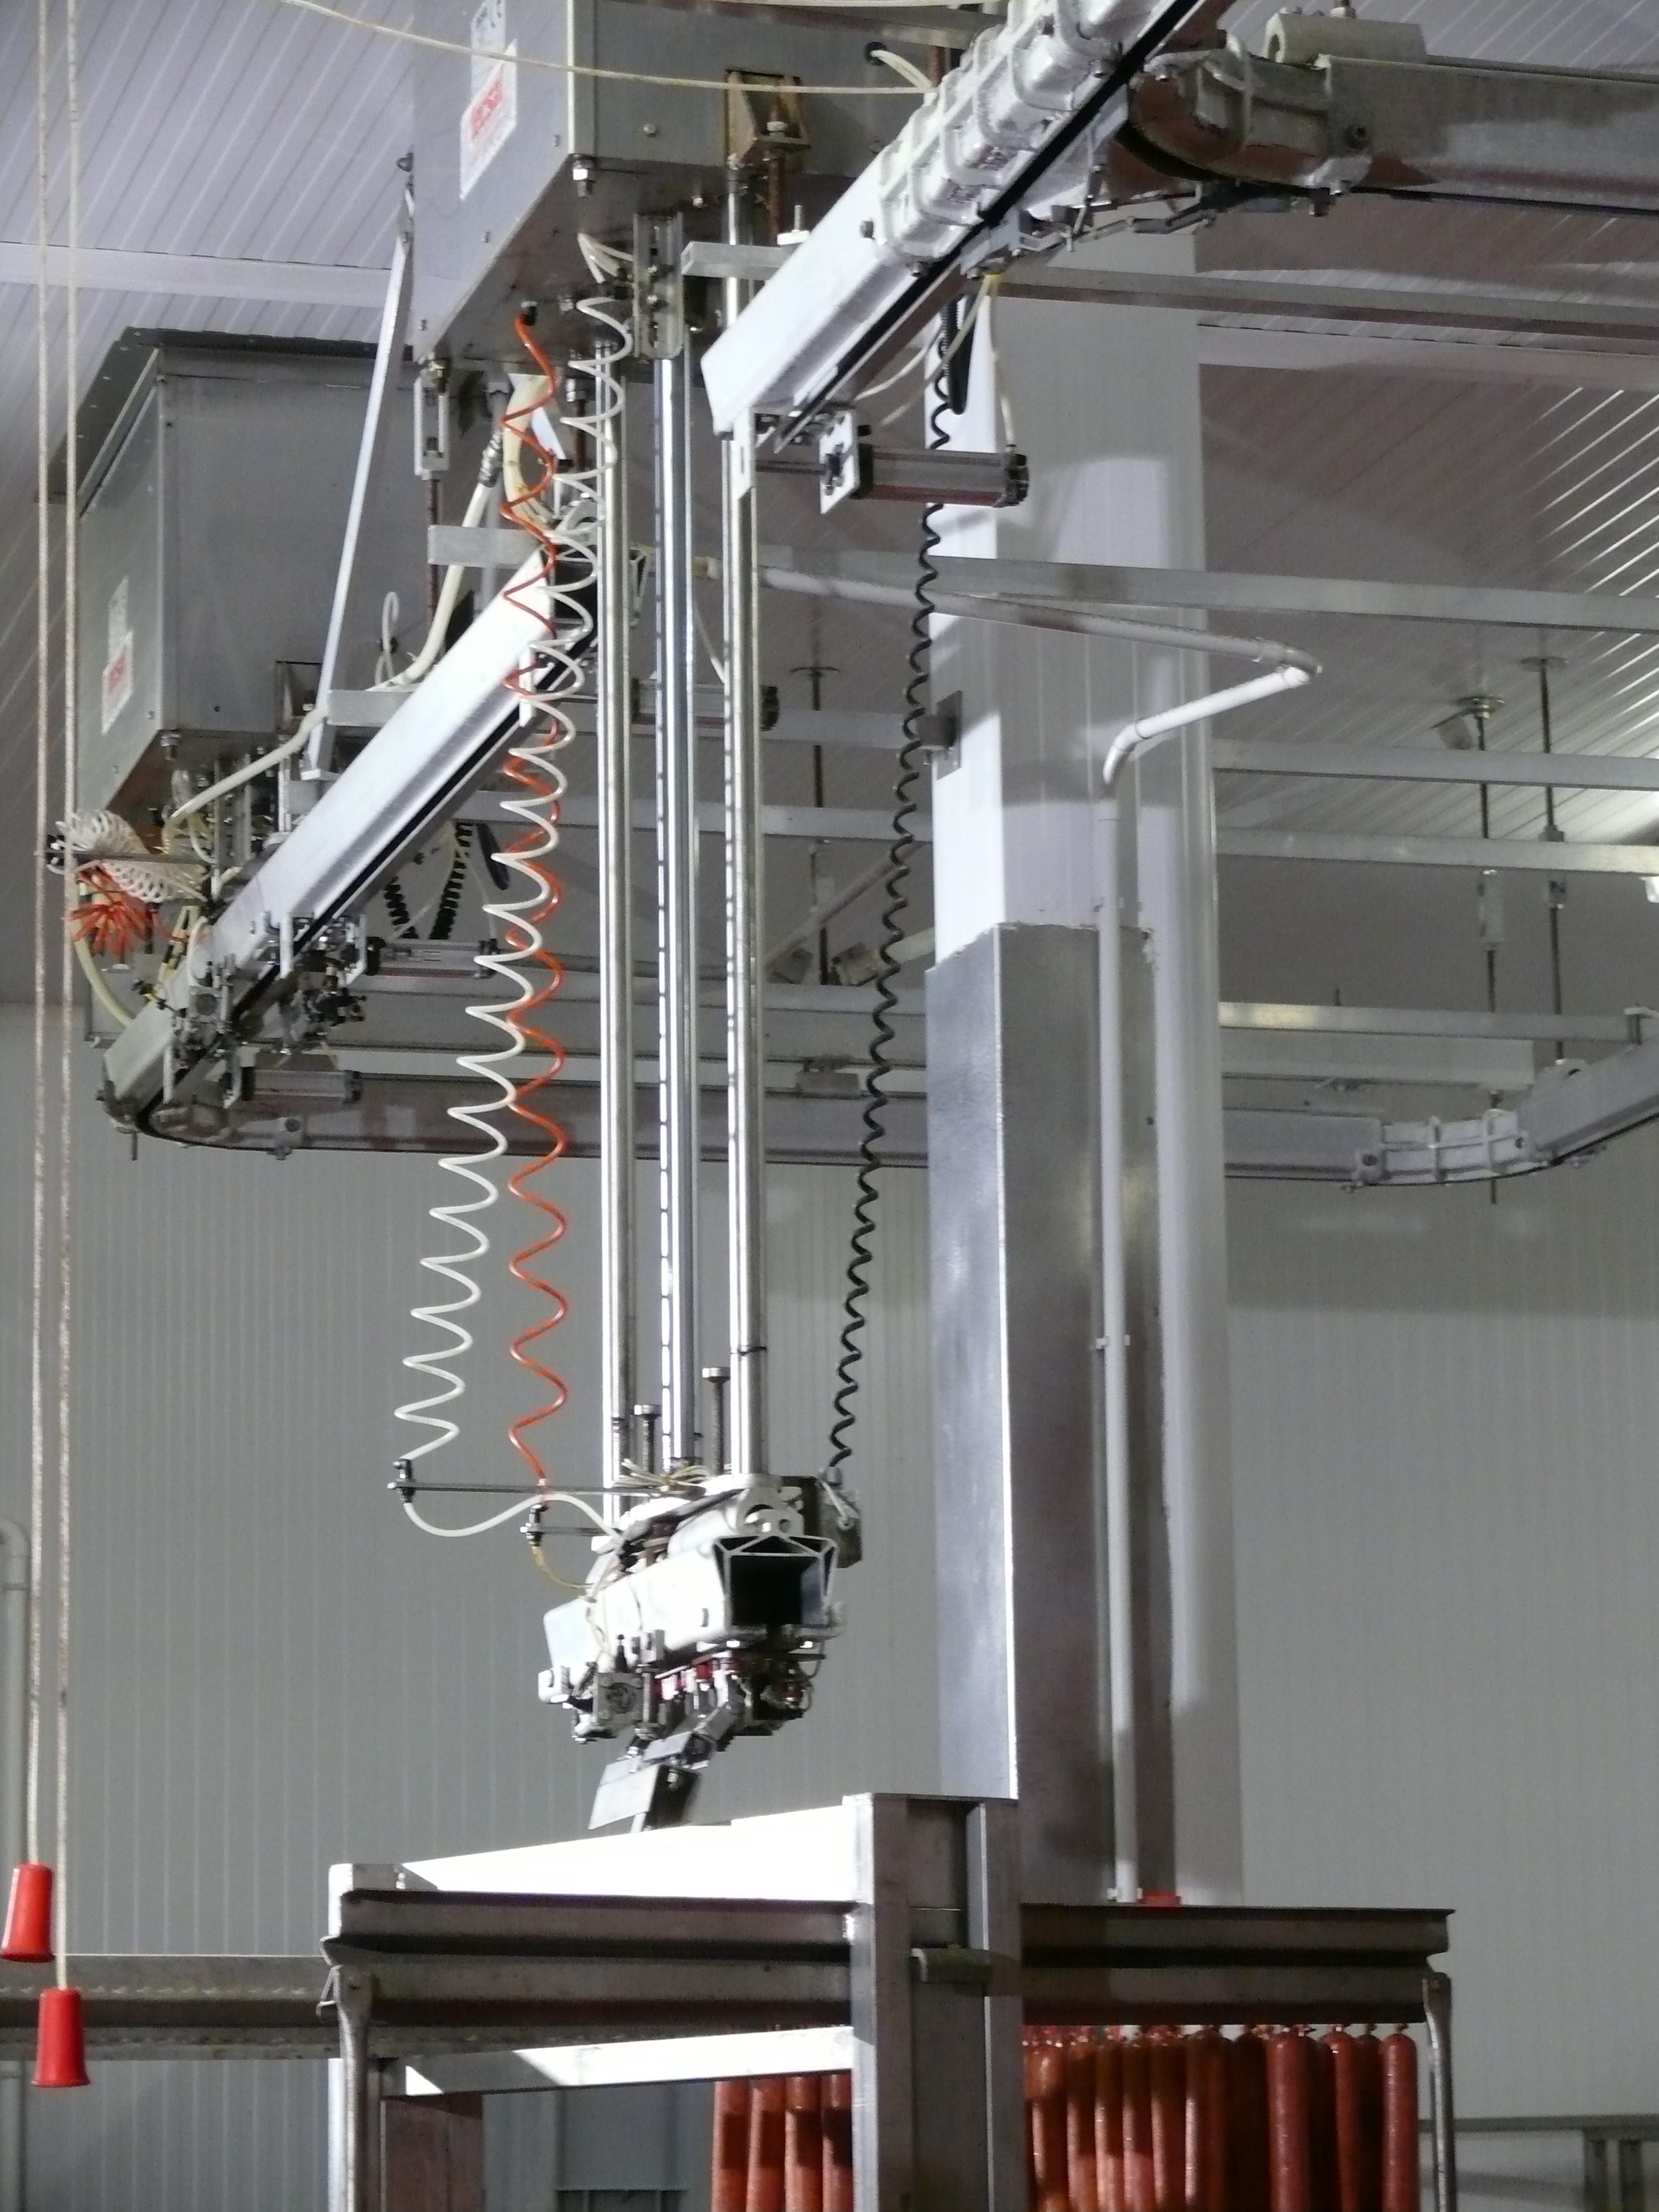 Lowerator for a Manual Load of a Salami Racks - 02.jpg